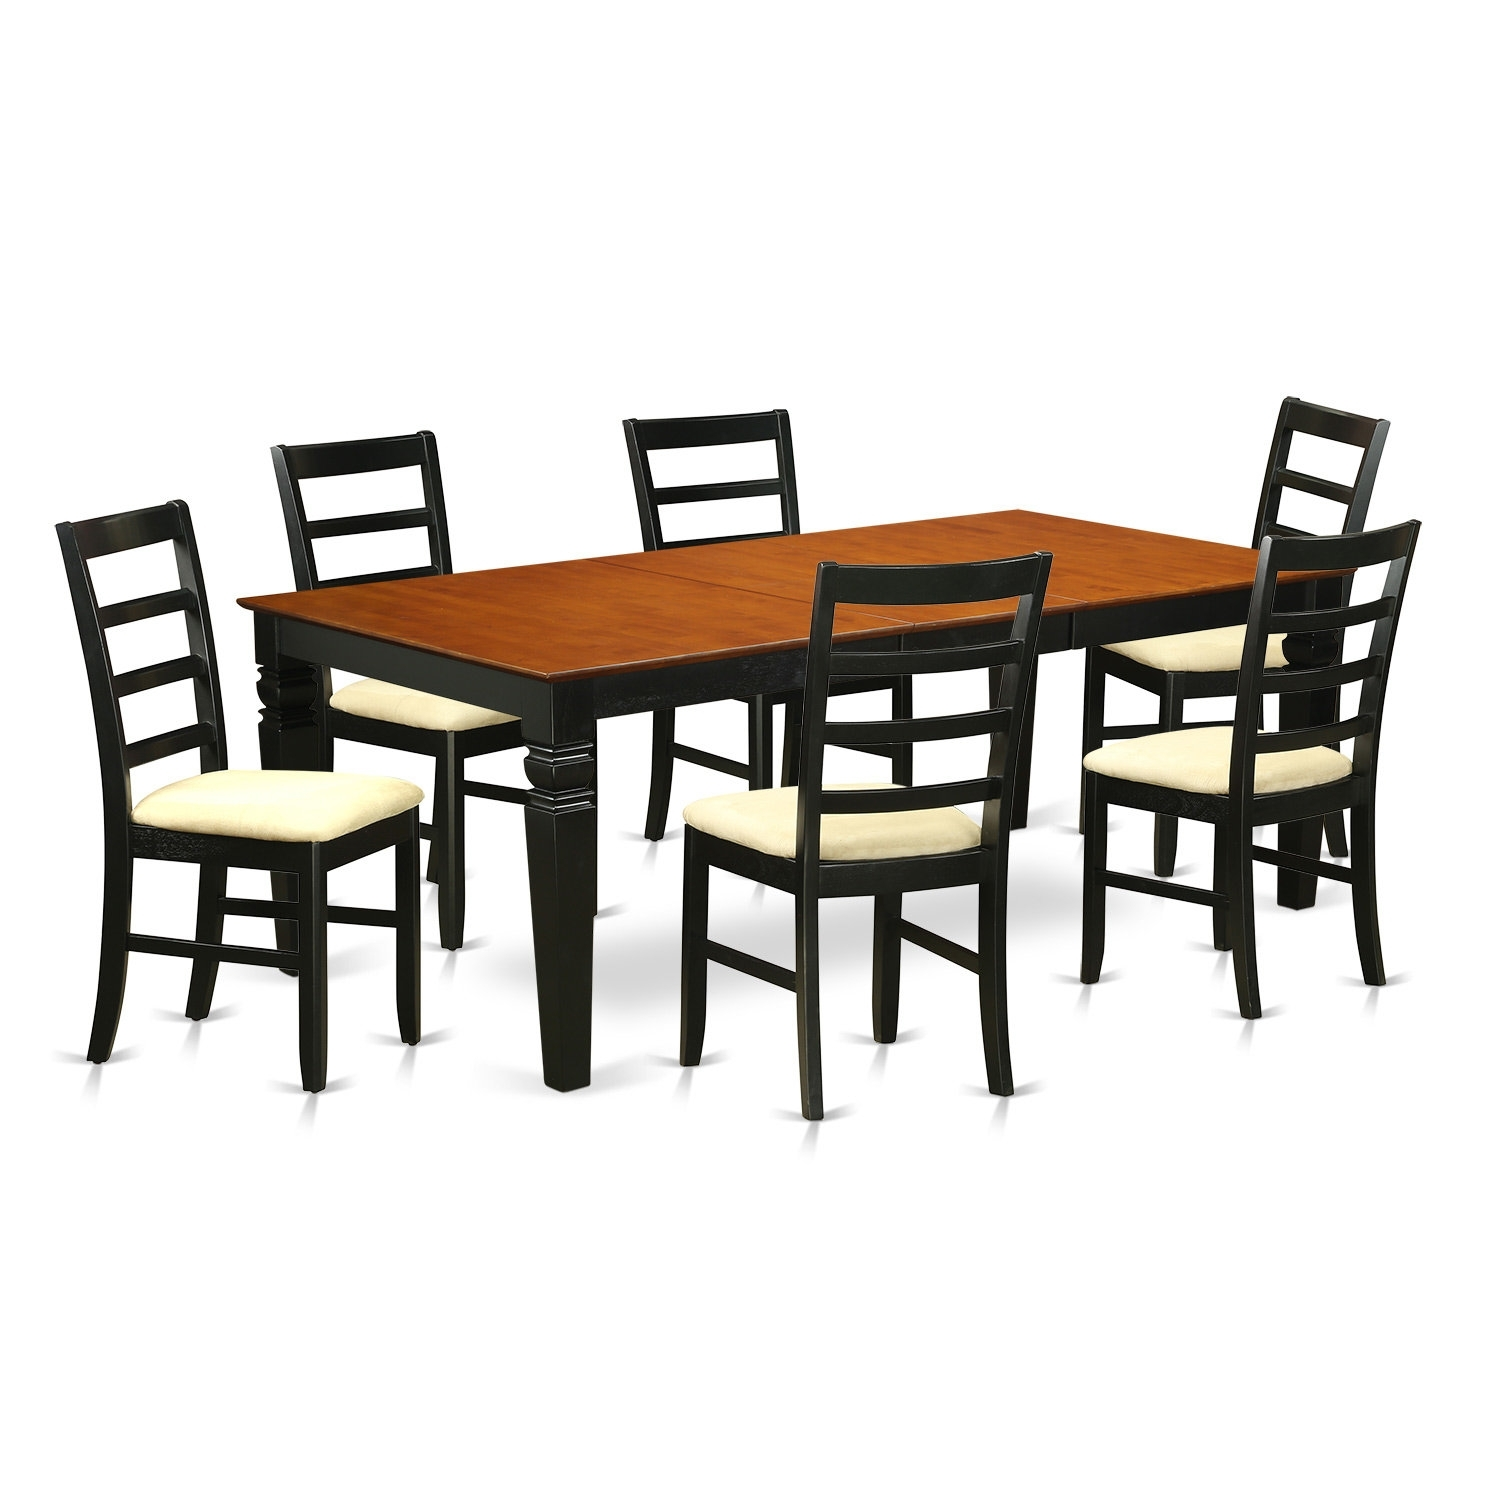 Wooden Importers Logan 7 Piece Dining Set | Wayfair For 2018 Chandler 7 Piece Extension Dining Sets With Fabric Side Chairs (View 15 of 20)